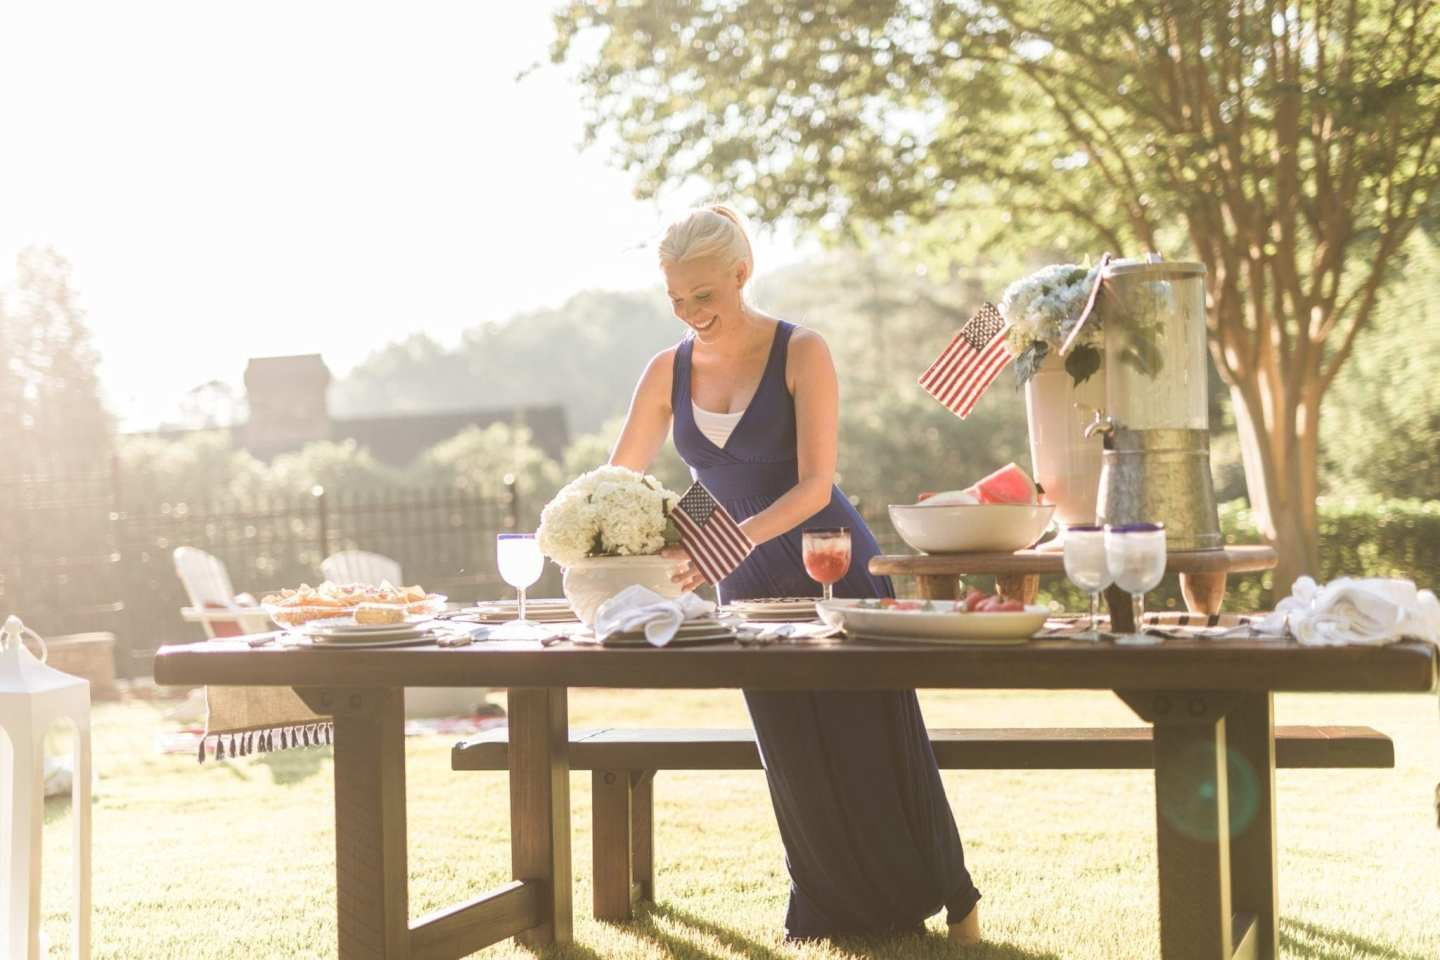 July 4th decor + table centerpieces for party